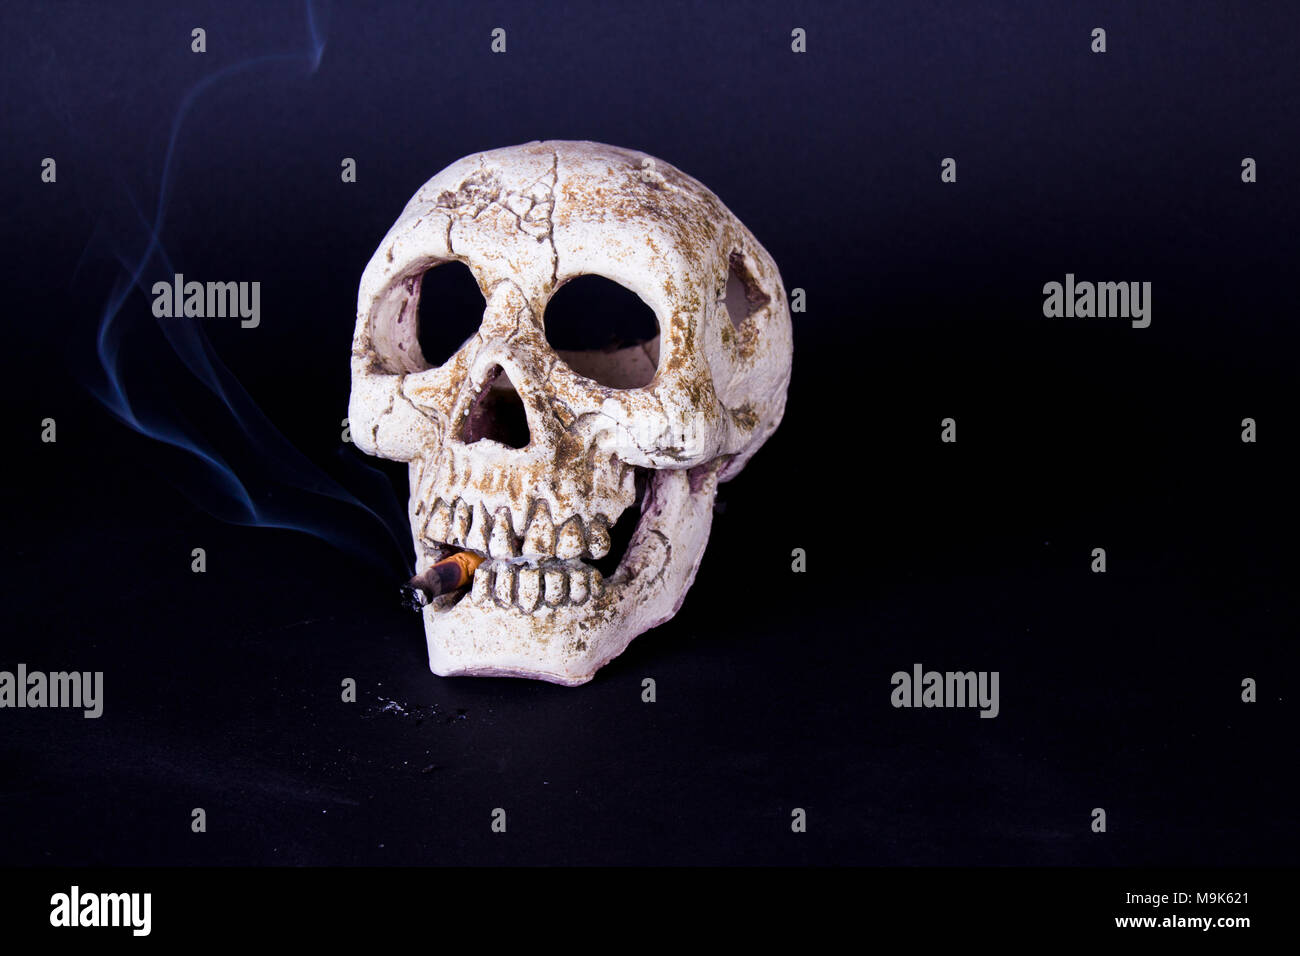 skull of a skeleton with burning cigarette analysis